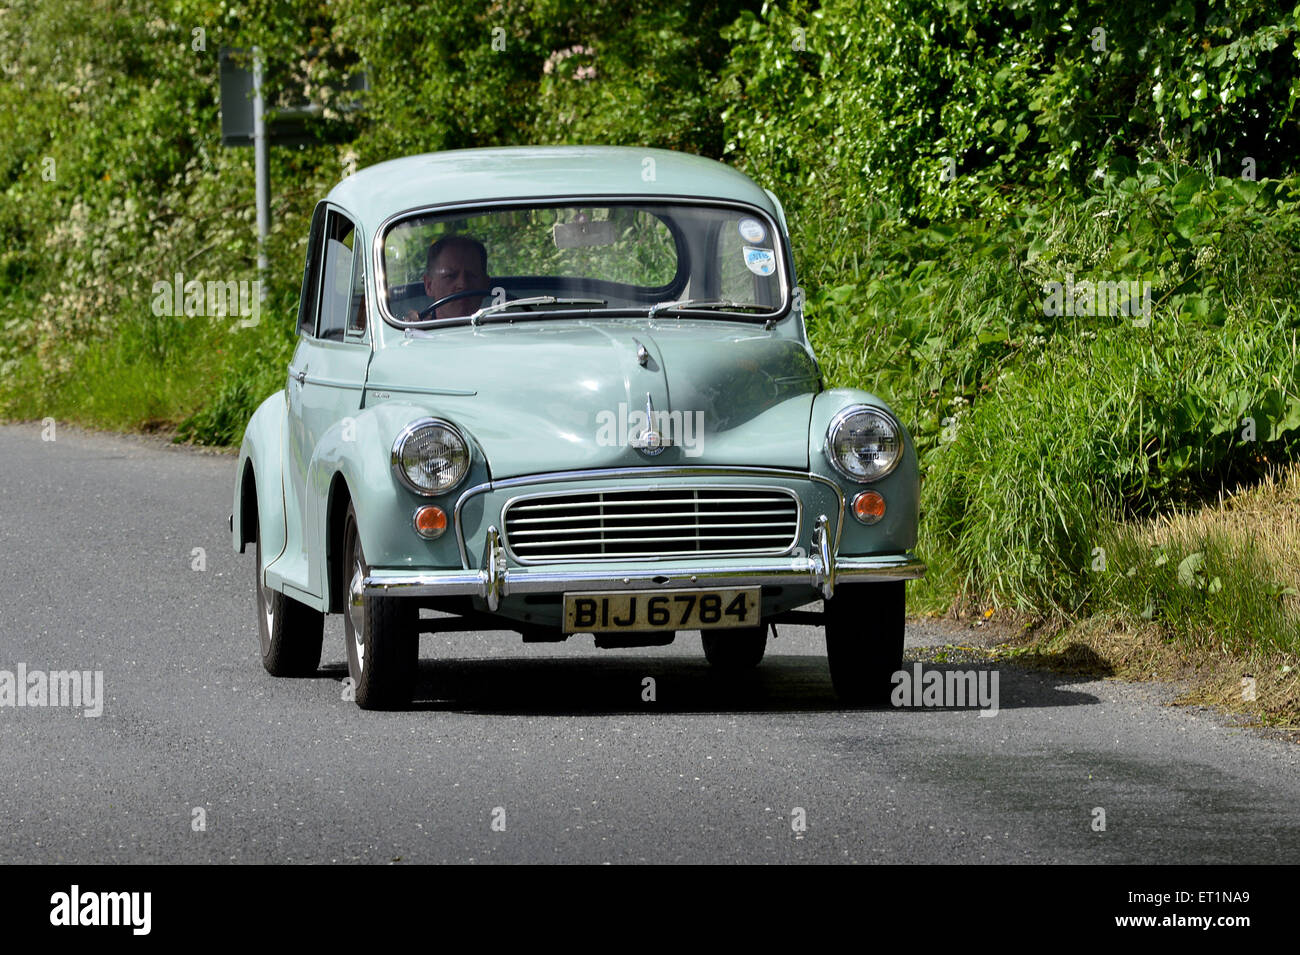 Delighted Country Cars Classic Images - Classic Cars Ideas - boiq.info